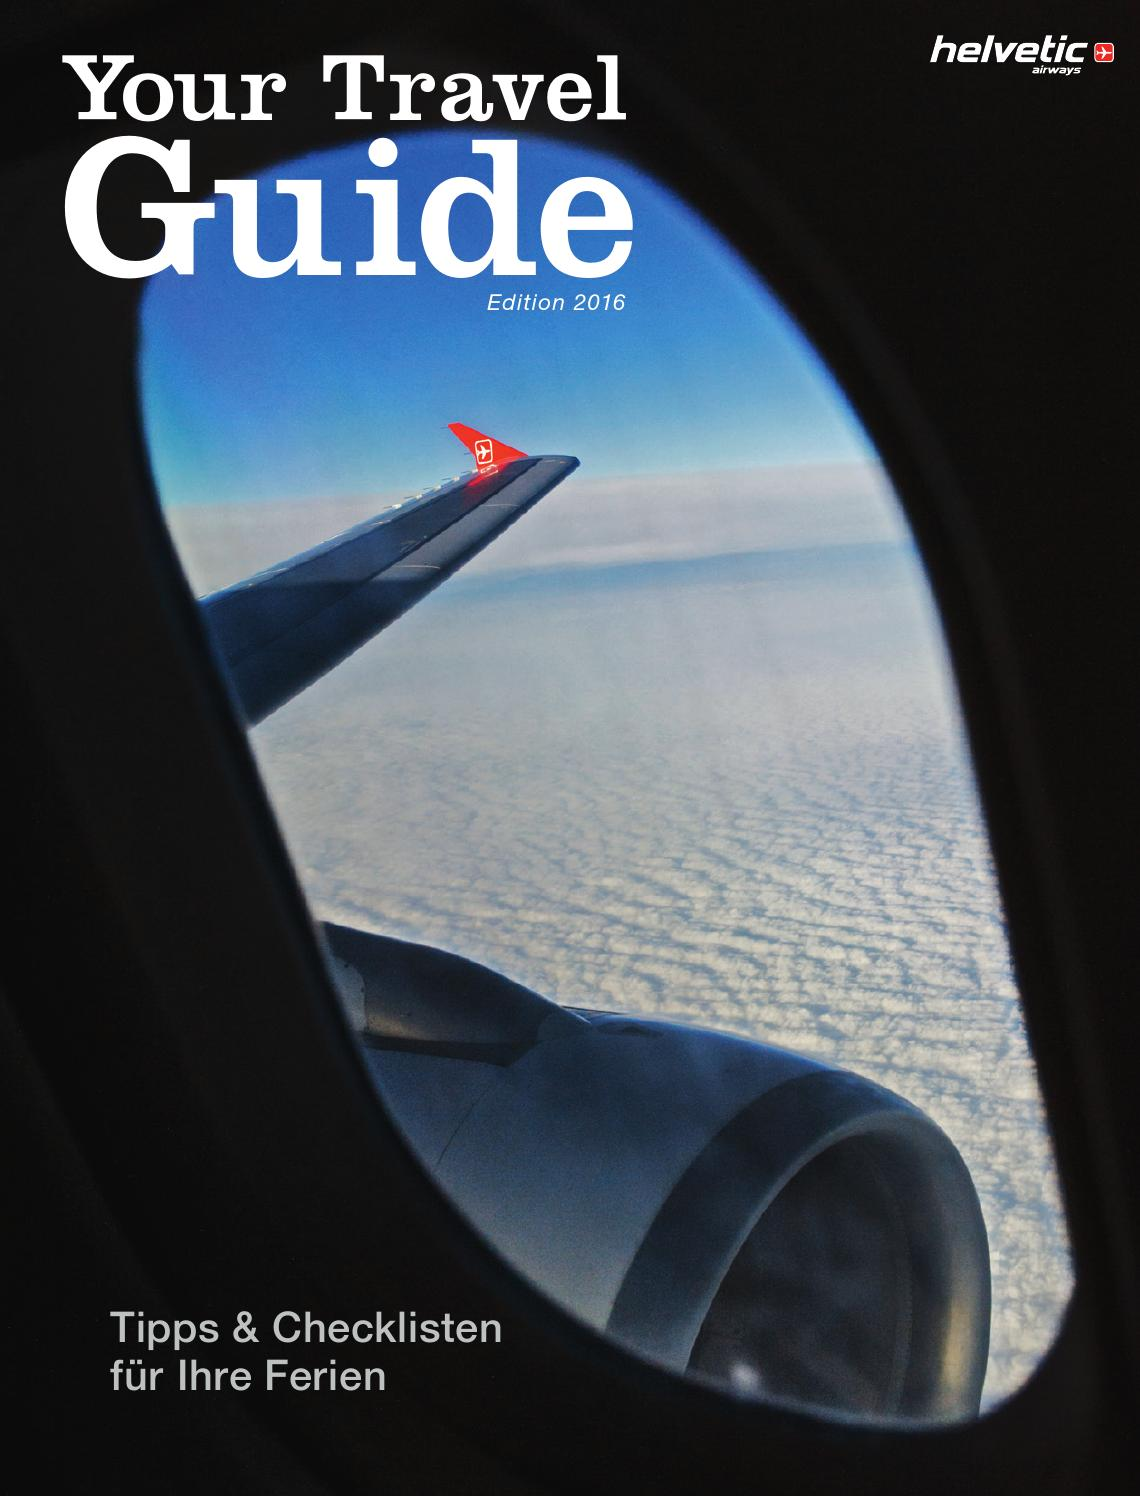 Your Travel Guide 2016 By Helvetic Airways Issuu